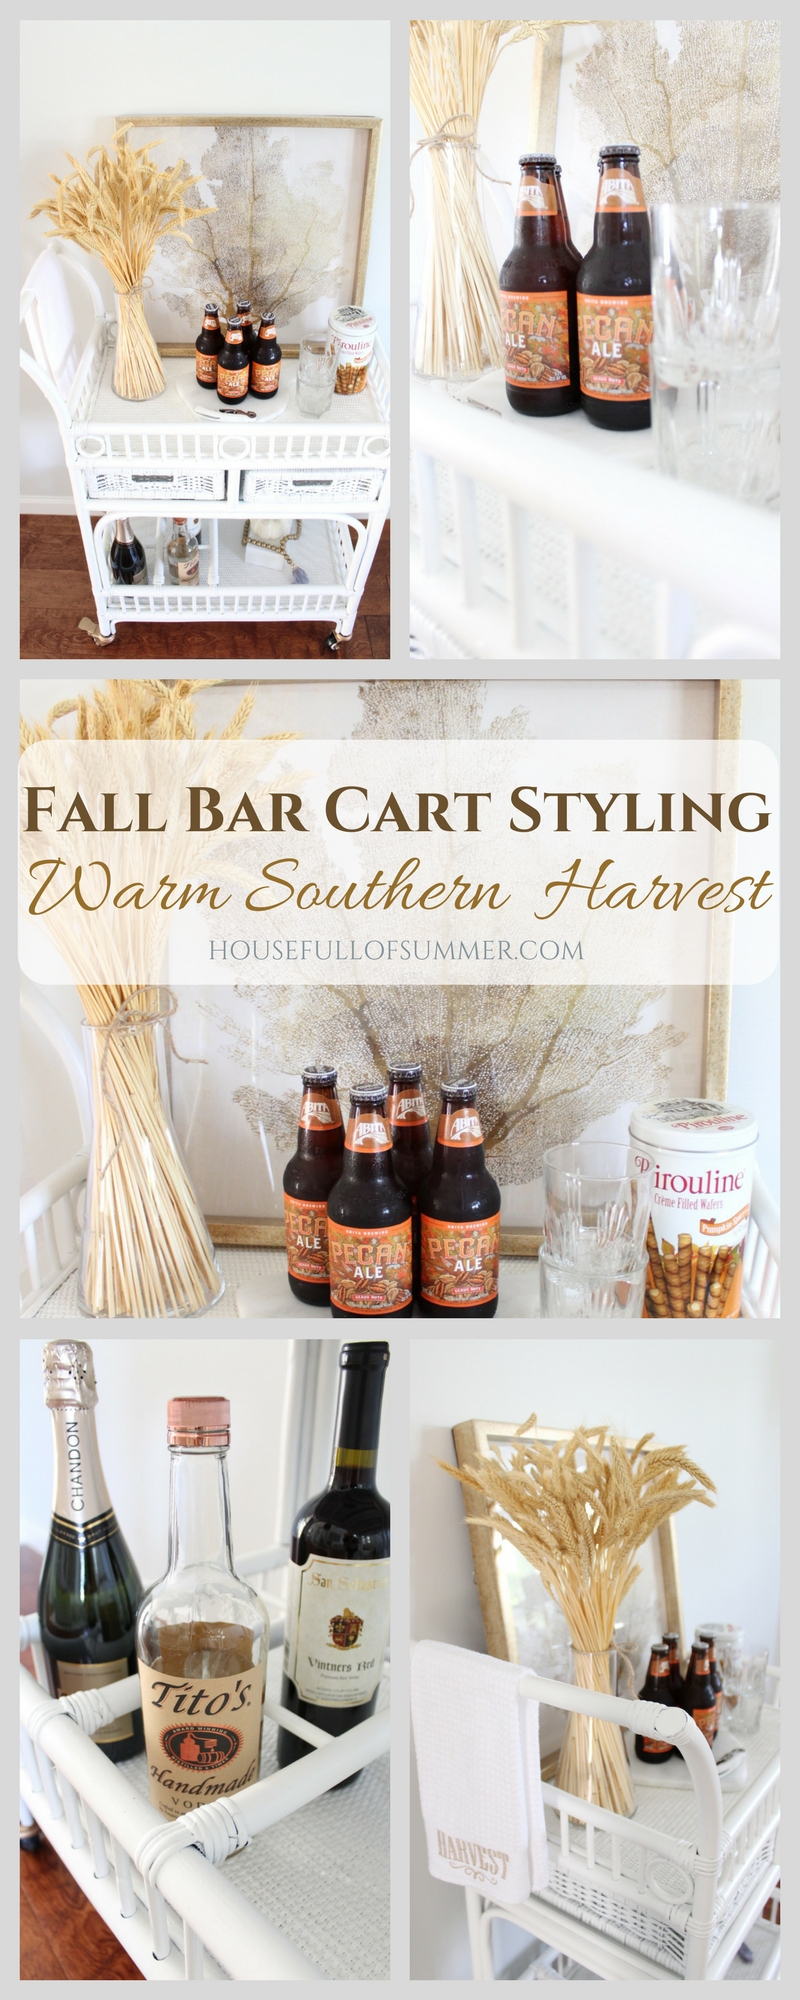 Bar Cart Styling - Warm Southern Harvest | bar cart makeover, fall bar cart ideas, southern fall decor, simple fall decor, bar cart styling tips, thanksgiving bar cart,